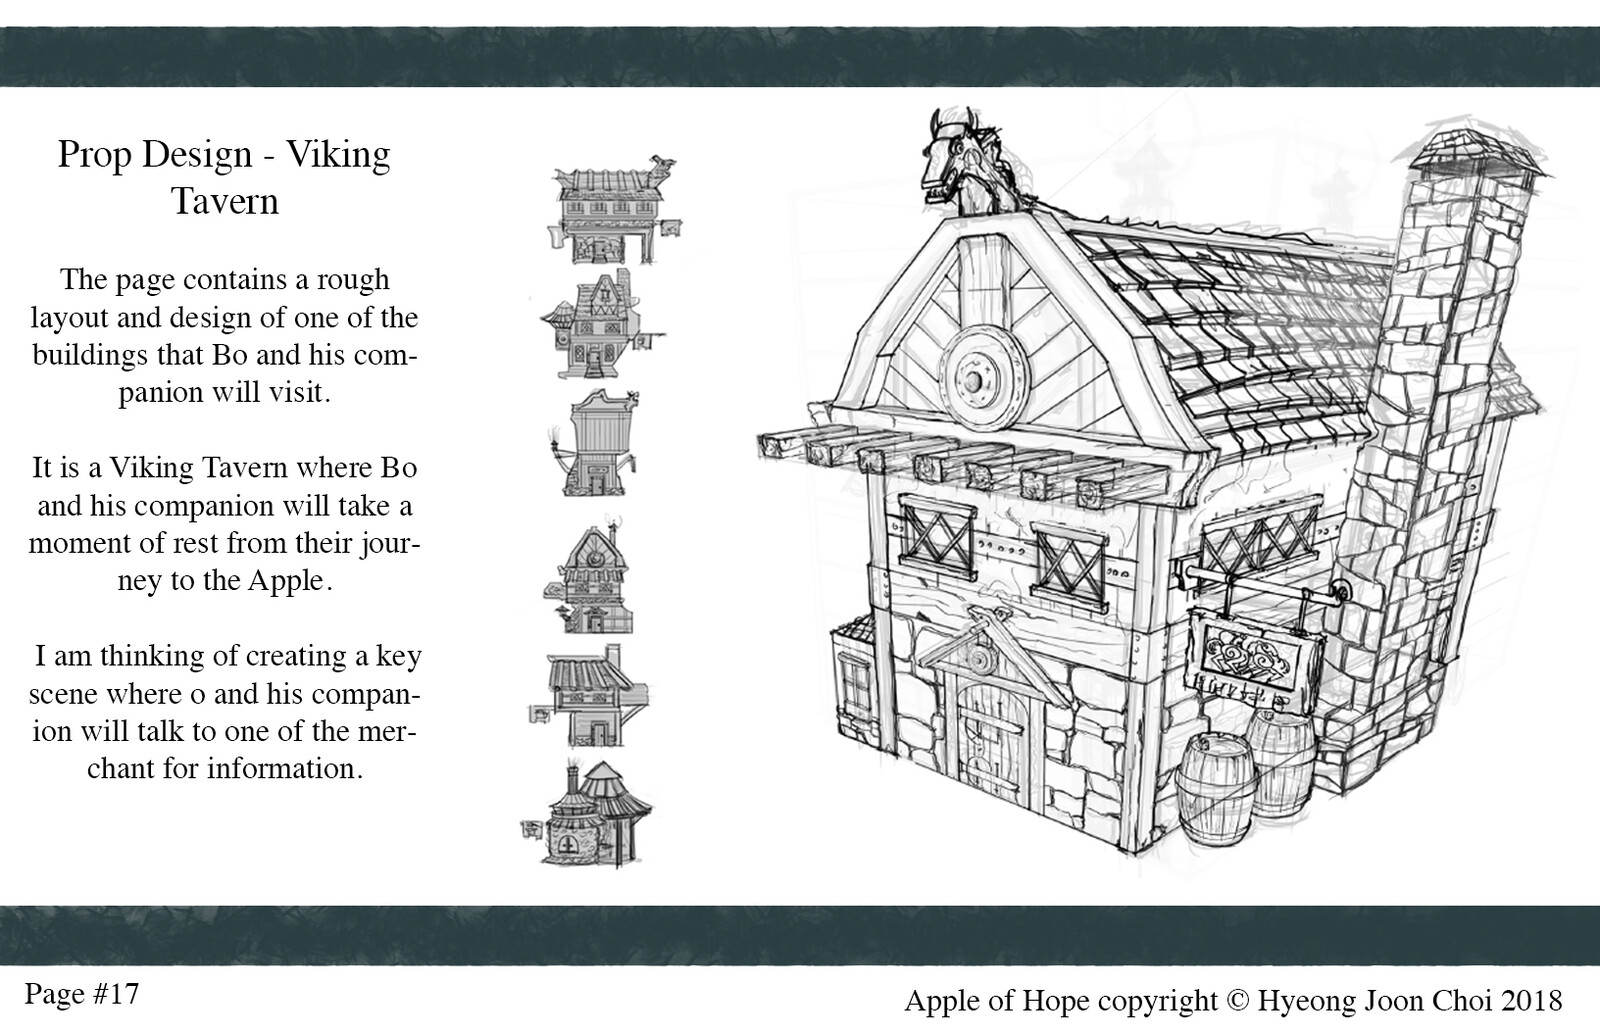 Apple of Hope - Production Design: Viking Tavern